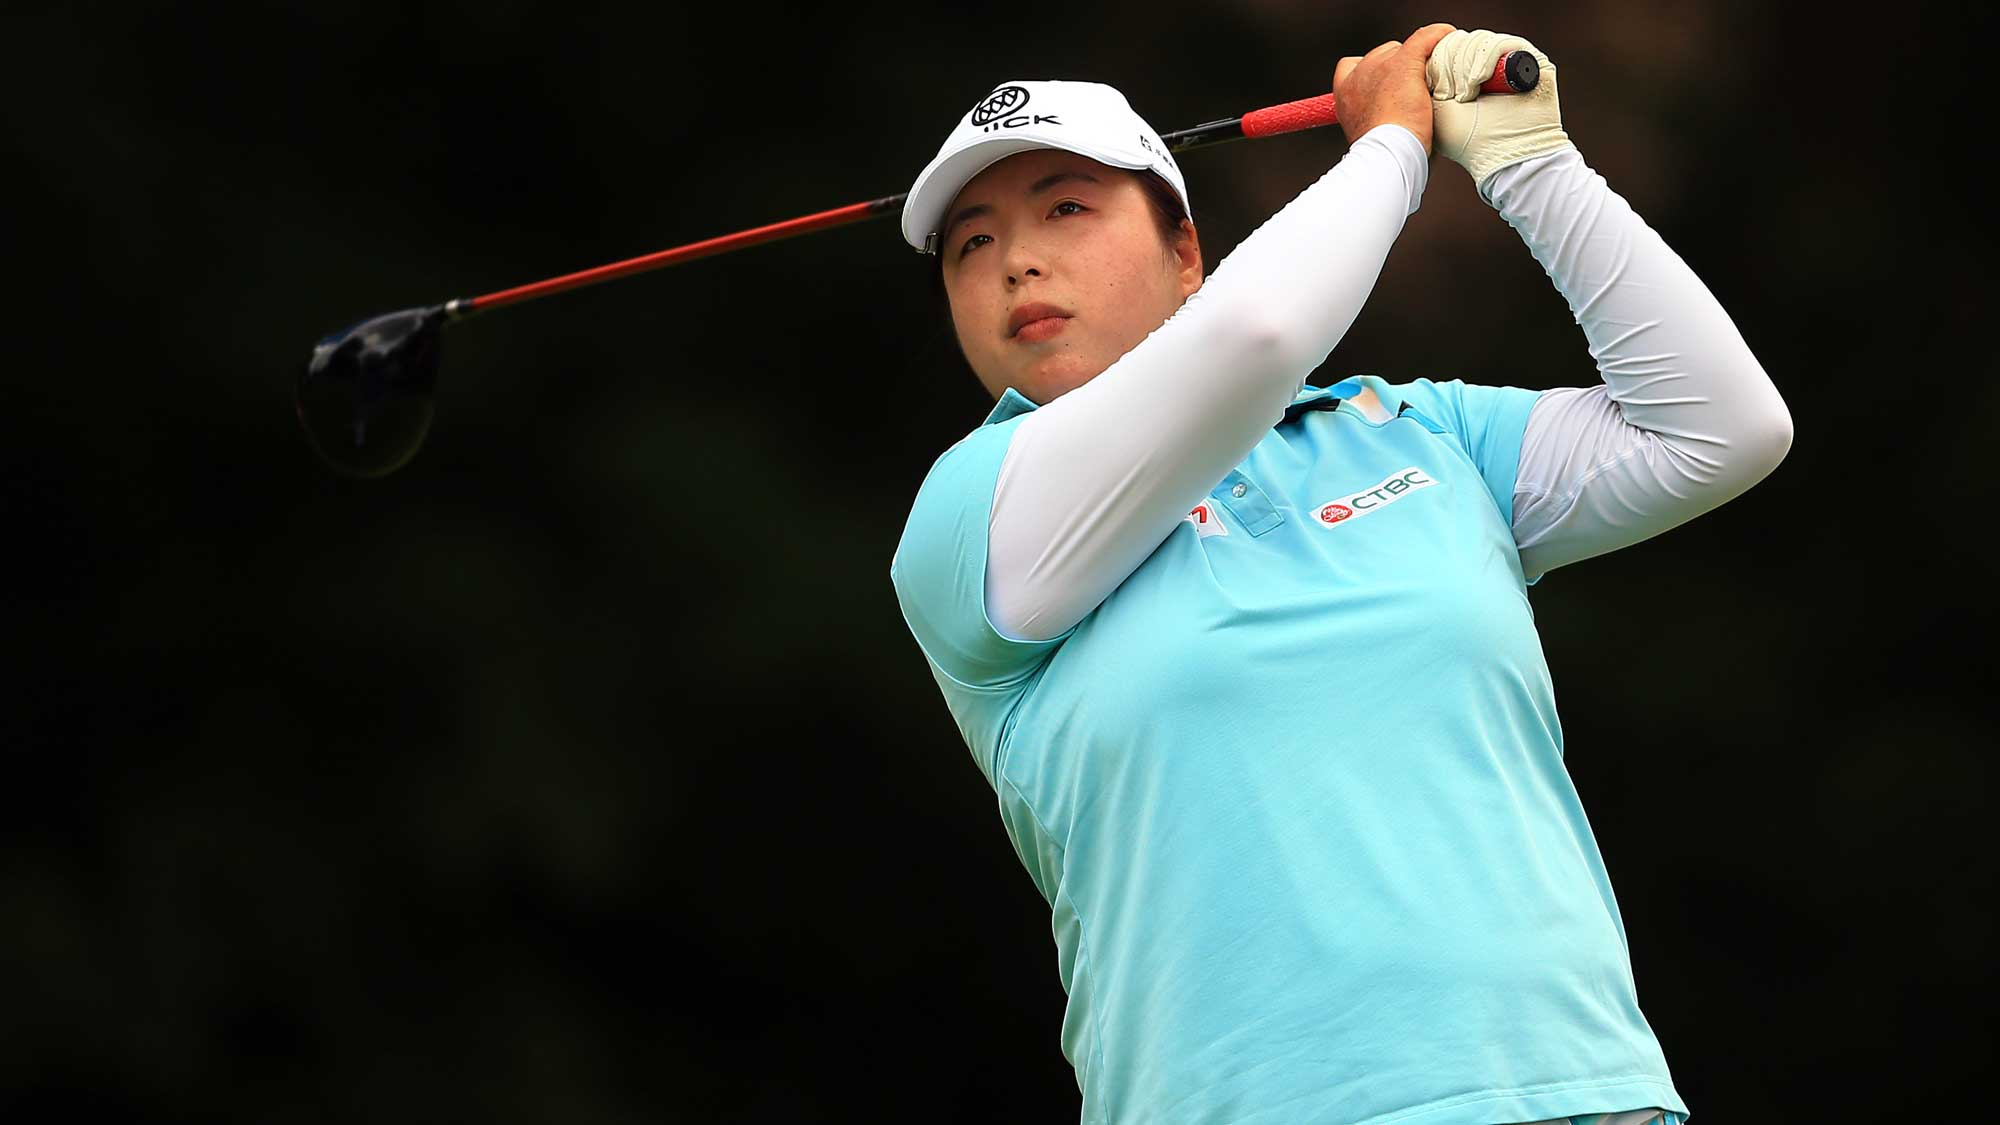 Shanshan Feng of China hits her tee shot on the 4th hole during the final round of the Canadian Pacific Women's Open